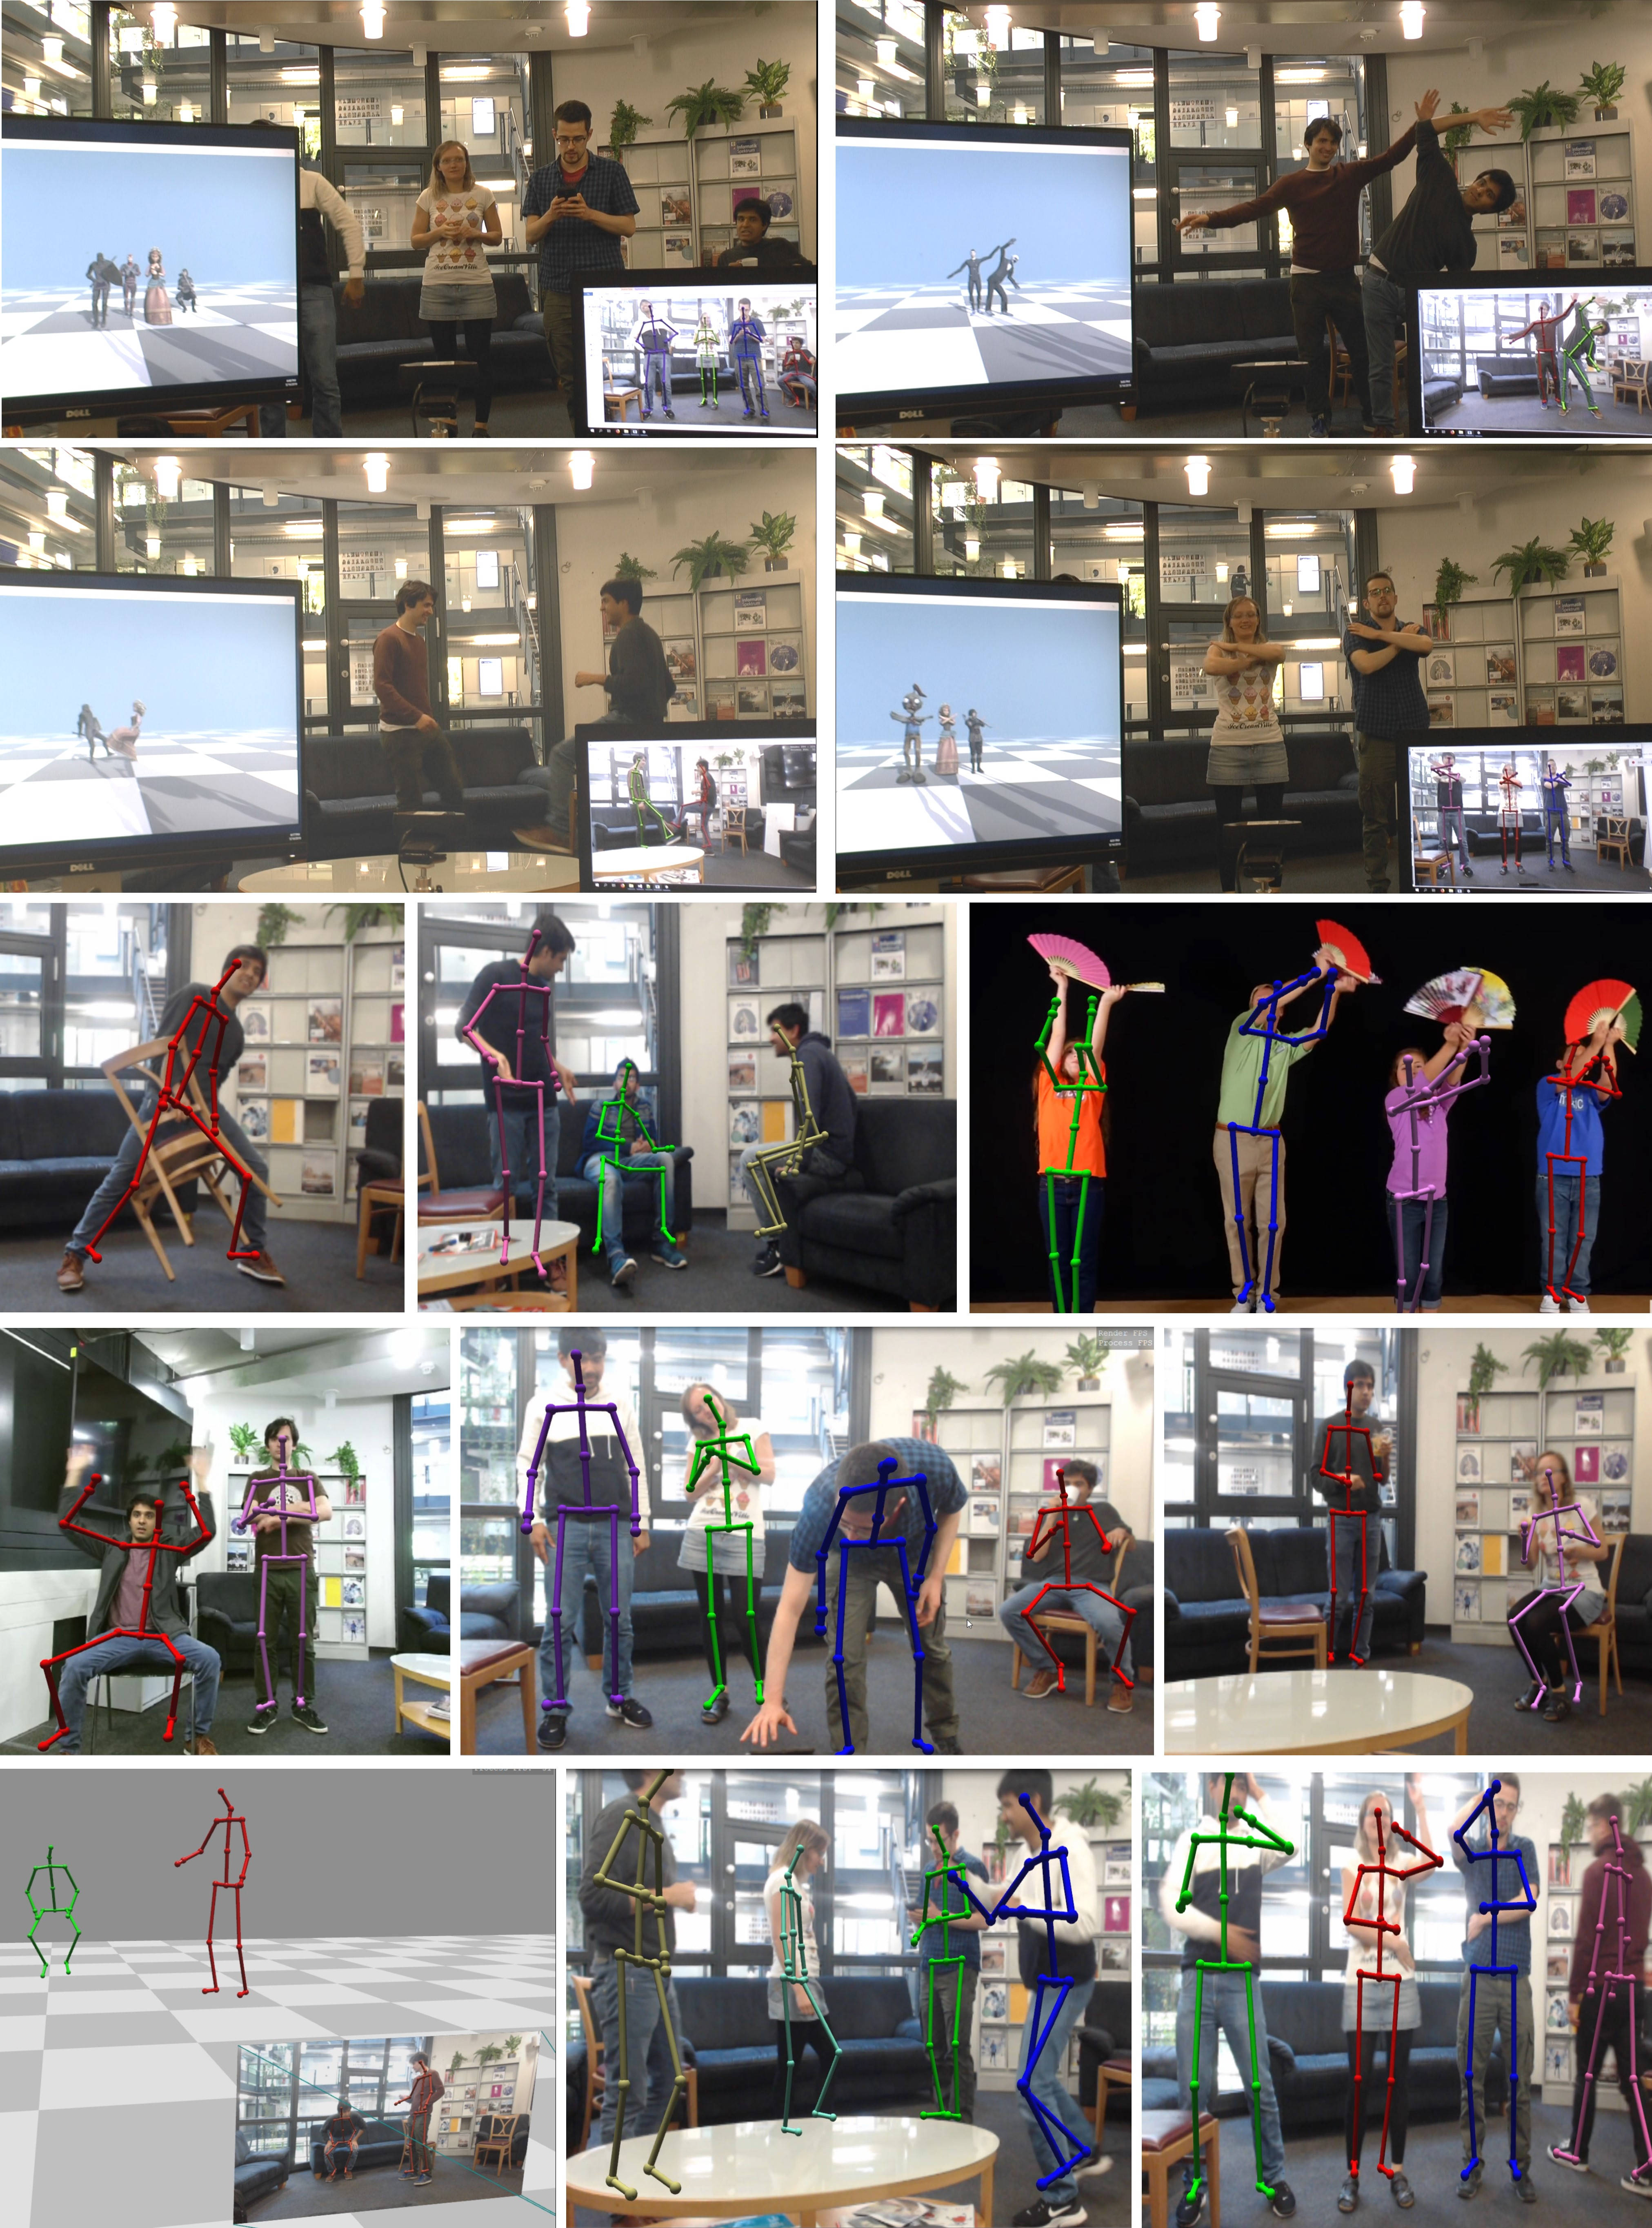 Real-time 3D motion capture results on a wide variety of multi-person scenes. Our approach handles challenging motions and poses, including interactions and cases of self-occlusion. The top two rows show our live system tracking subjects in real-time and driving virtual characters with the captured motion. Please refer to the supplemental video for more results.